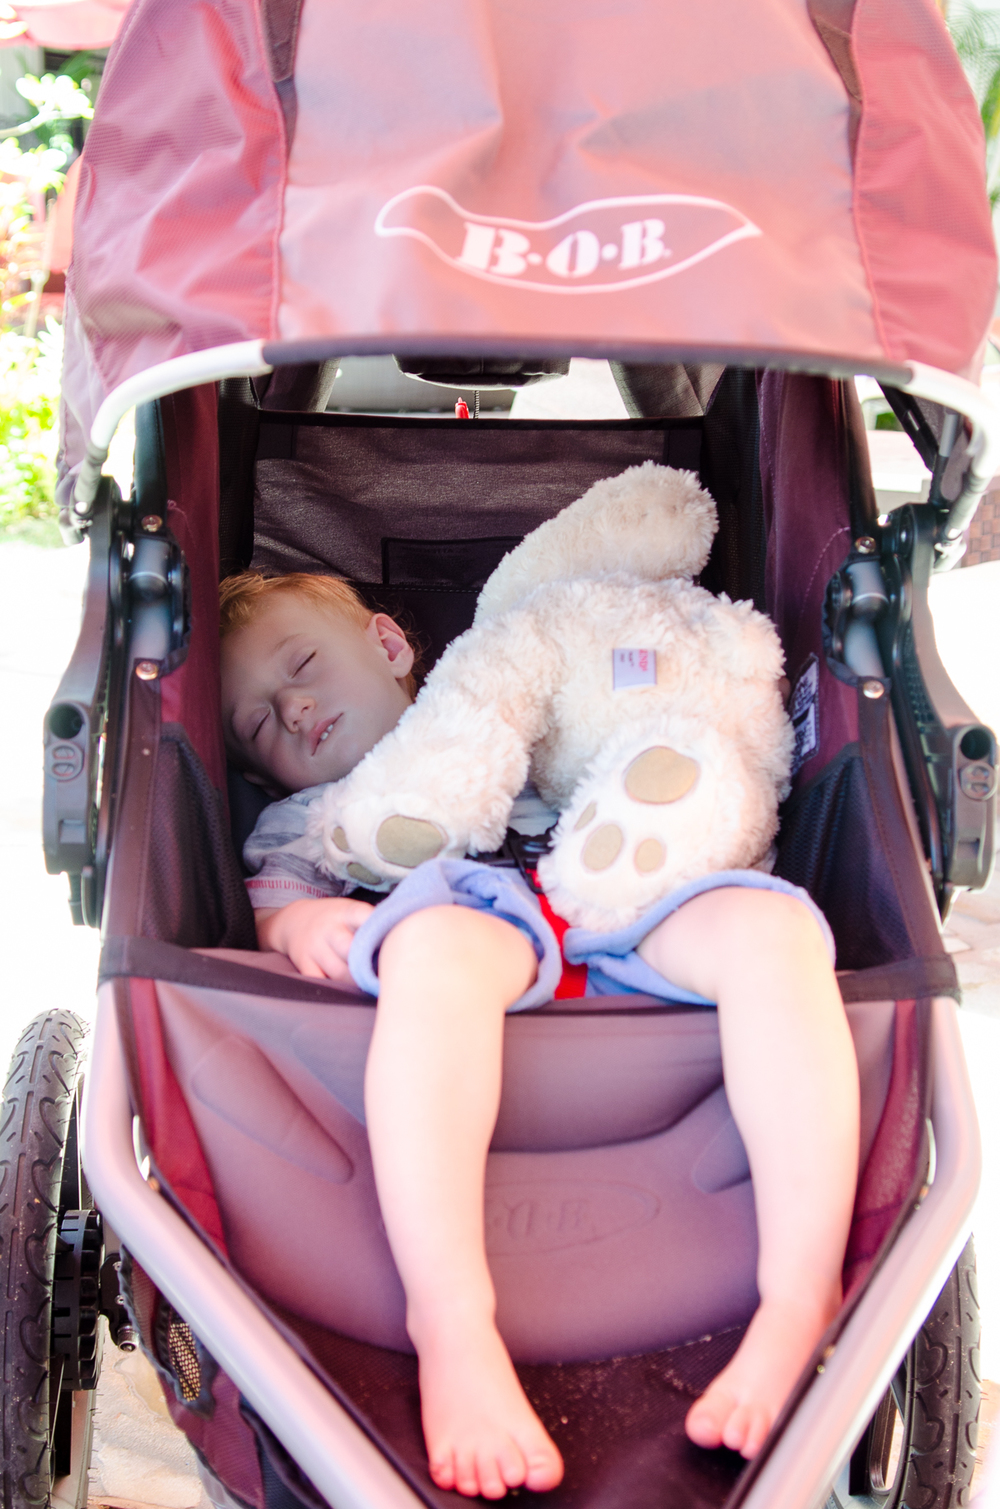 Napping in our Bob stroller // A Royal Hawaiian Vacation // {by Totes and the City}